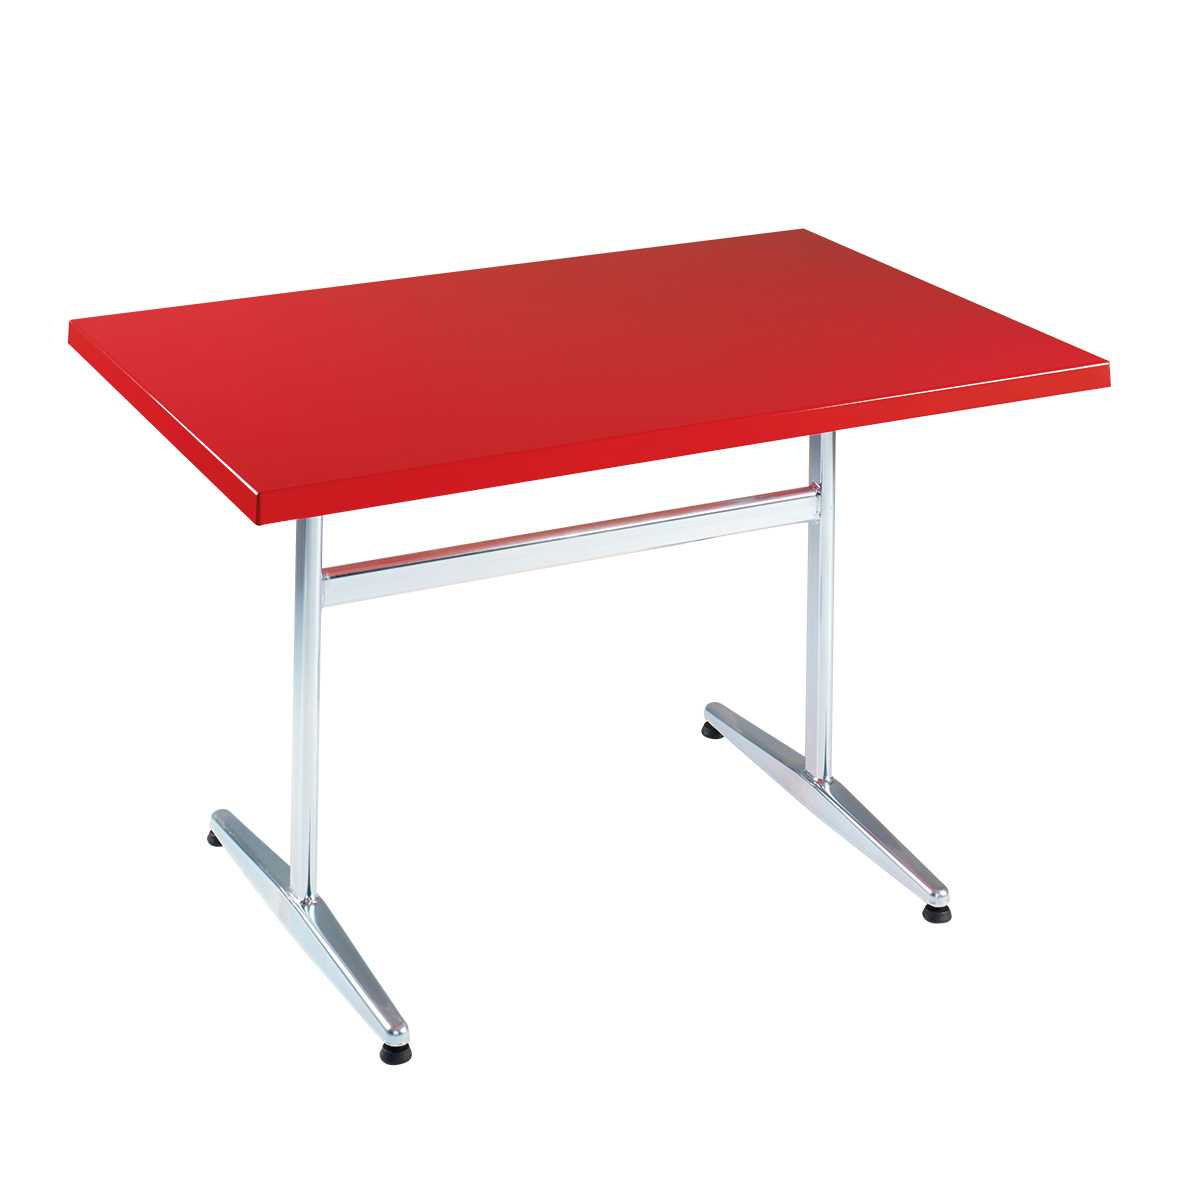 Table PRV rouge traffic, brillante